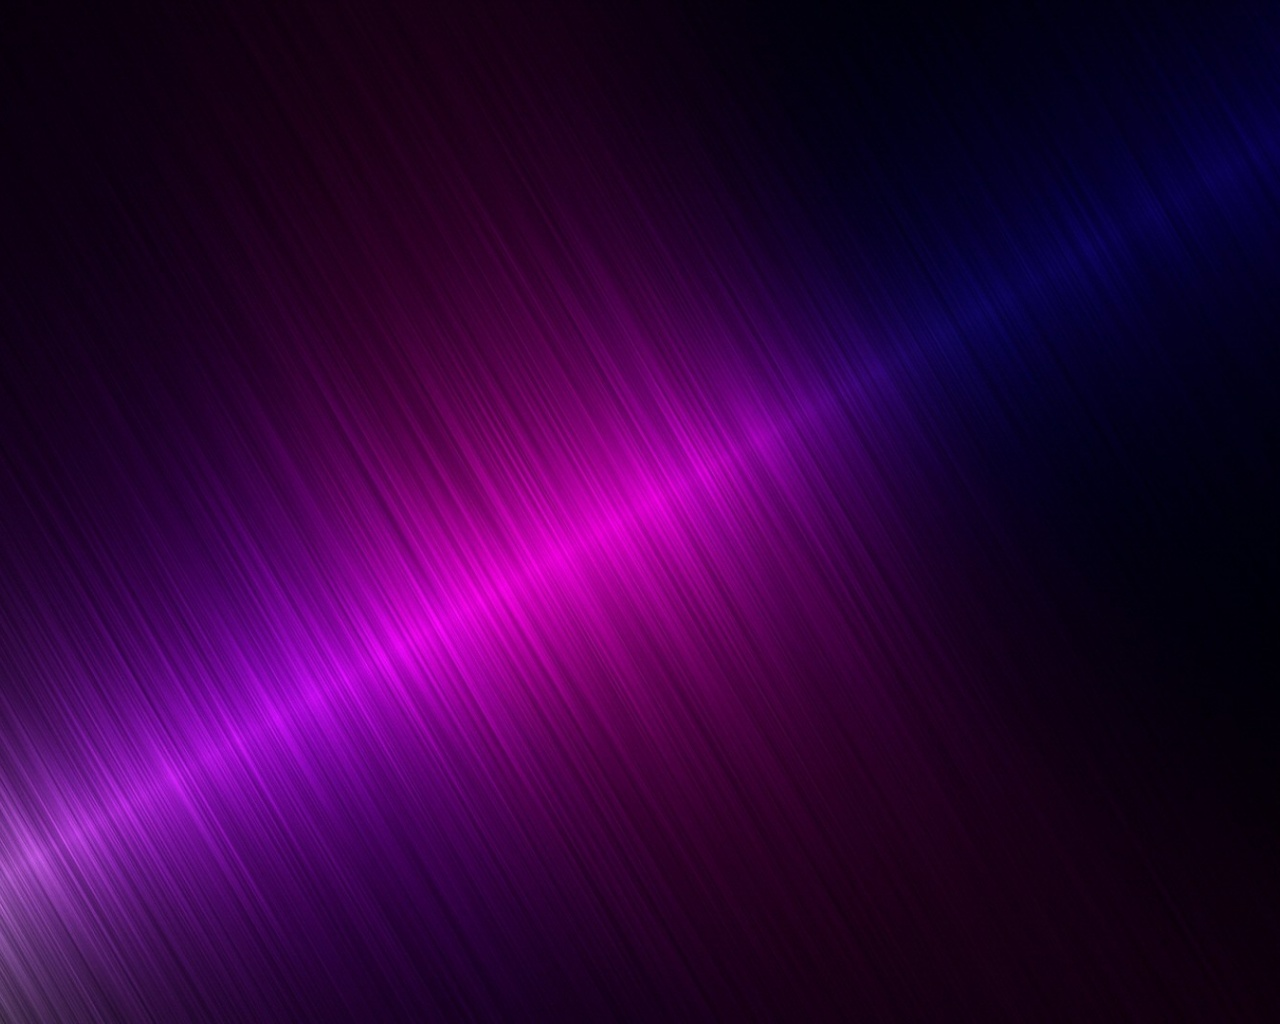 purple wallpaper 36057